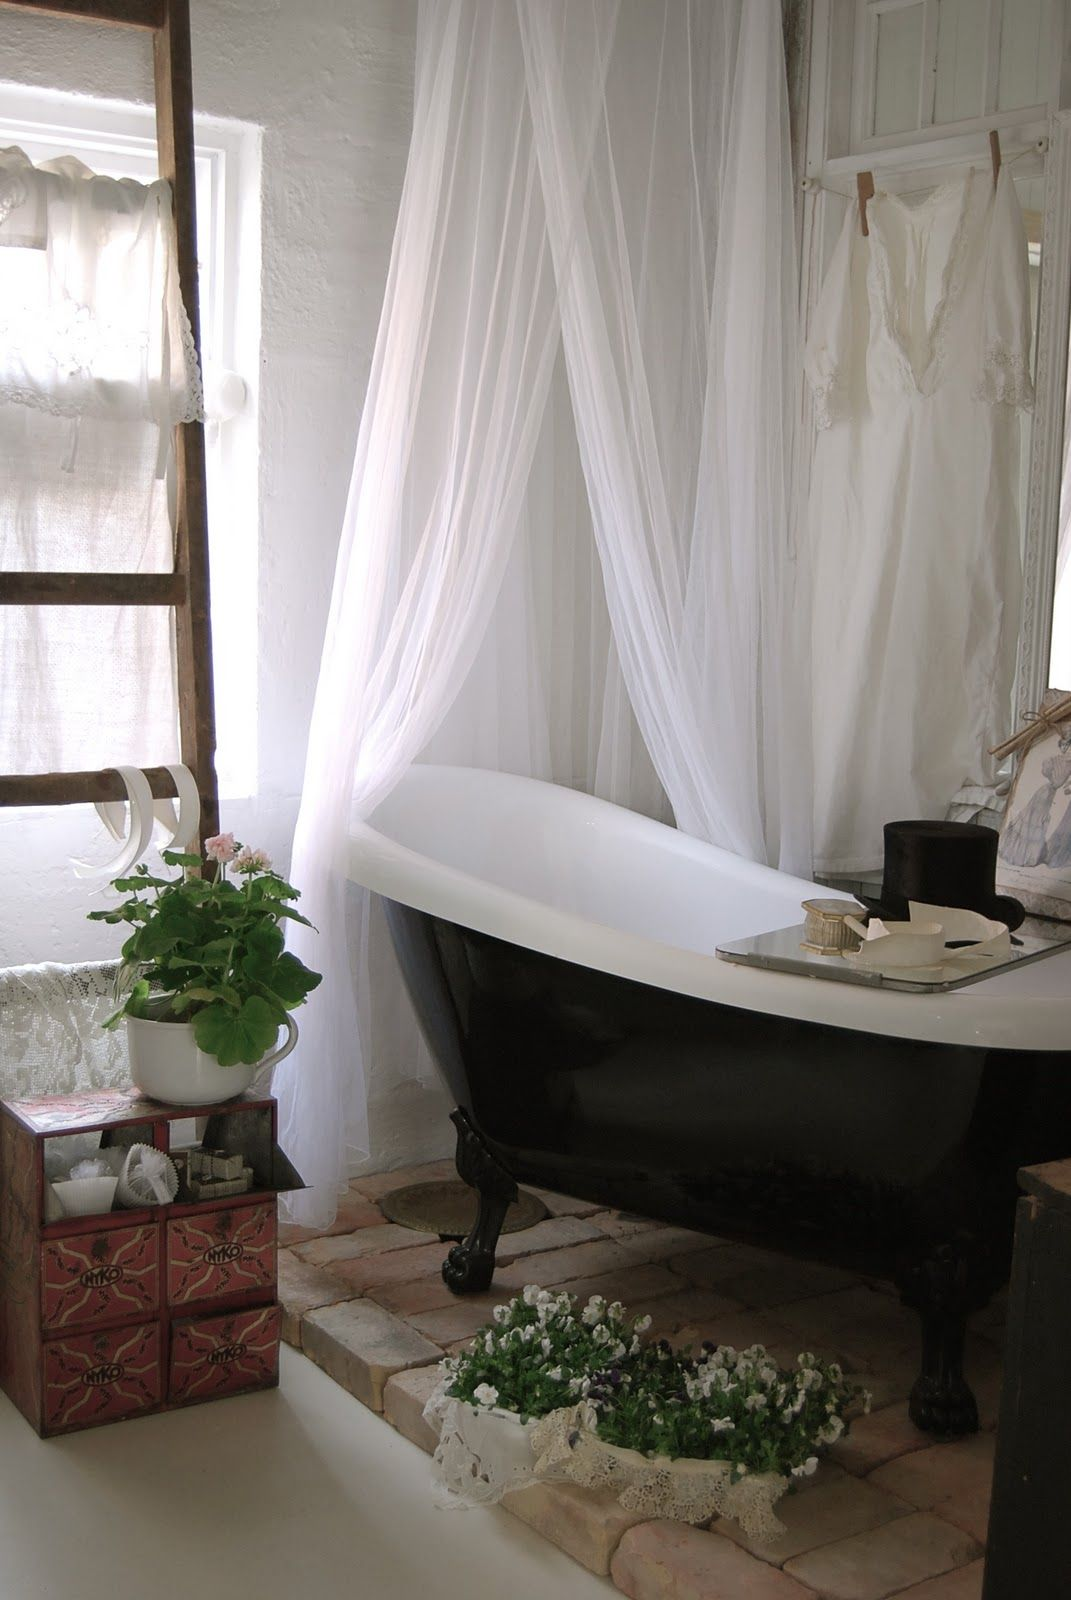 Clawfoot tub shower curtain ideas -